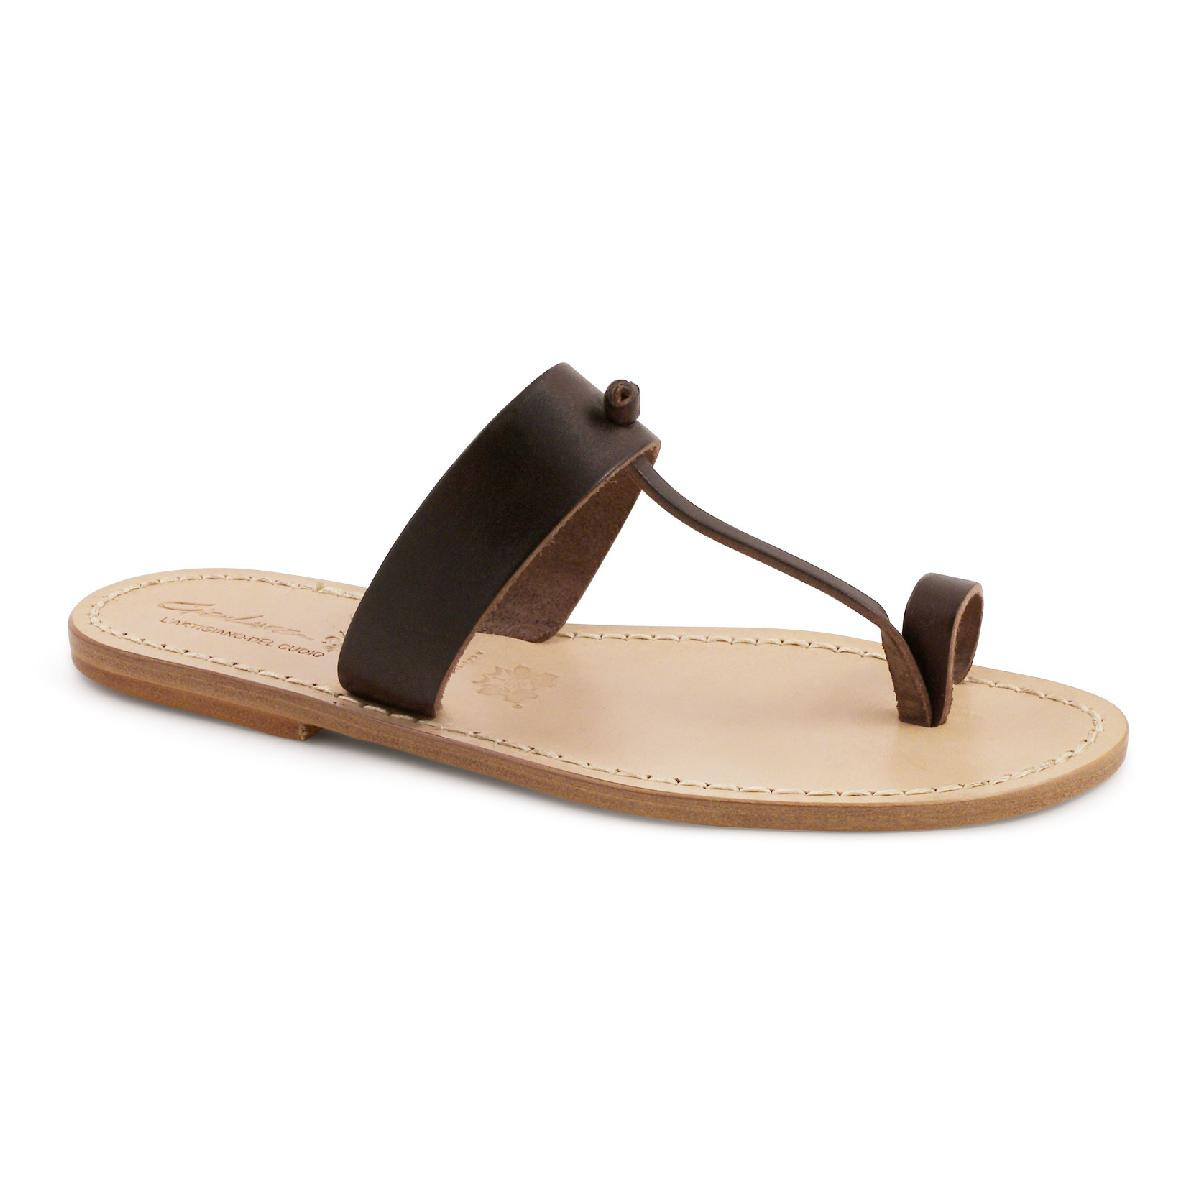 8f5f41defe3 Brown leather thong sandals Handmade in Italy. Loading zoom